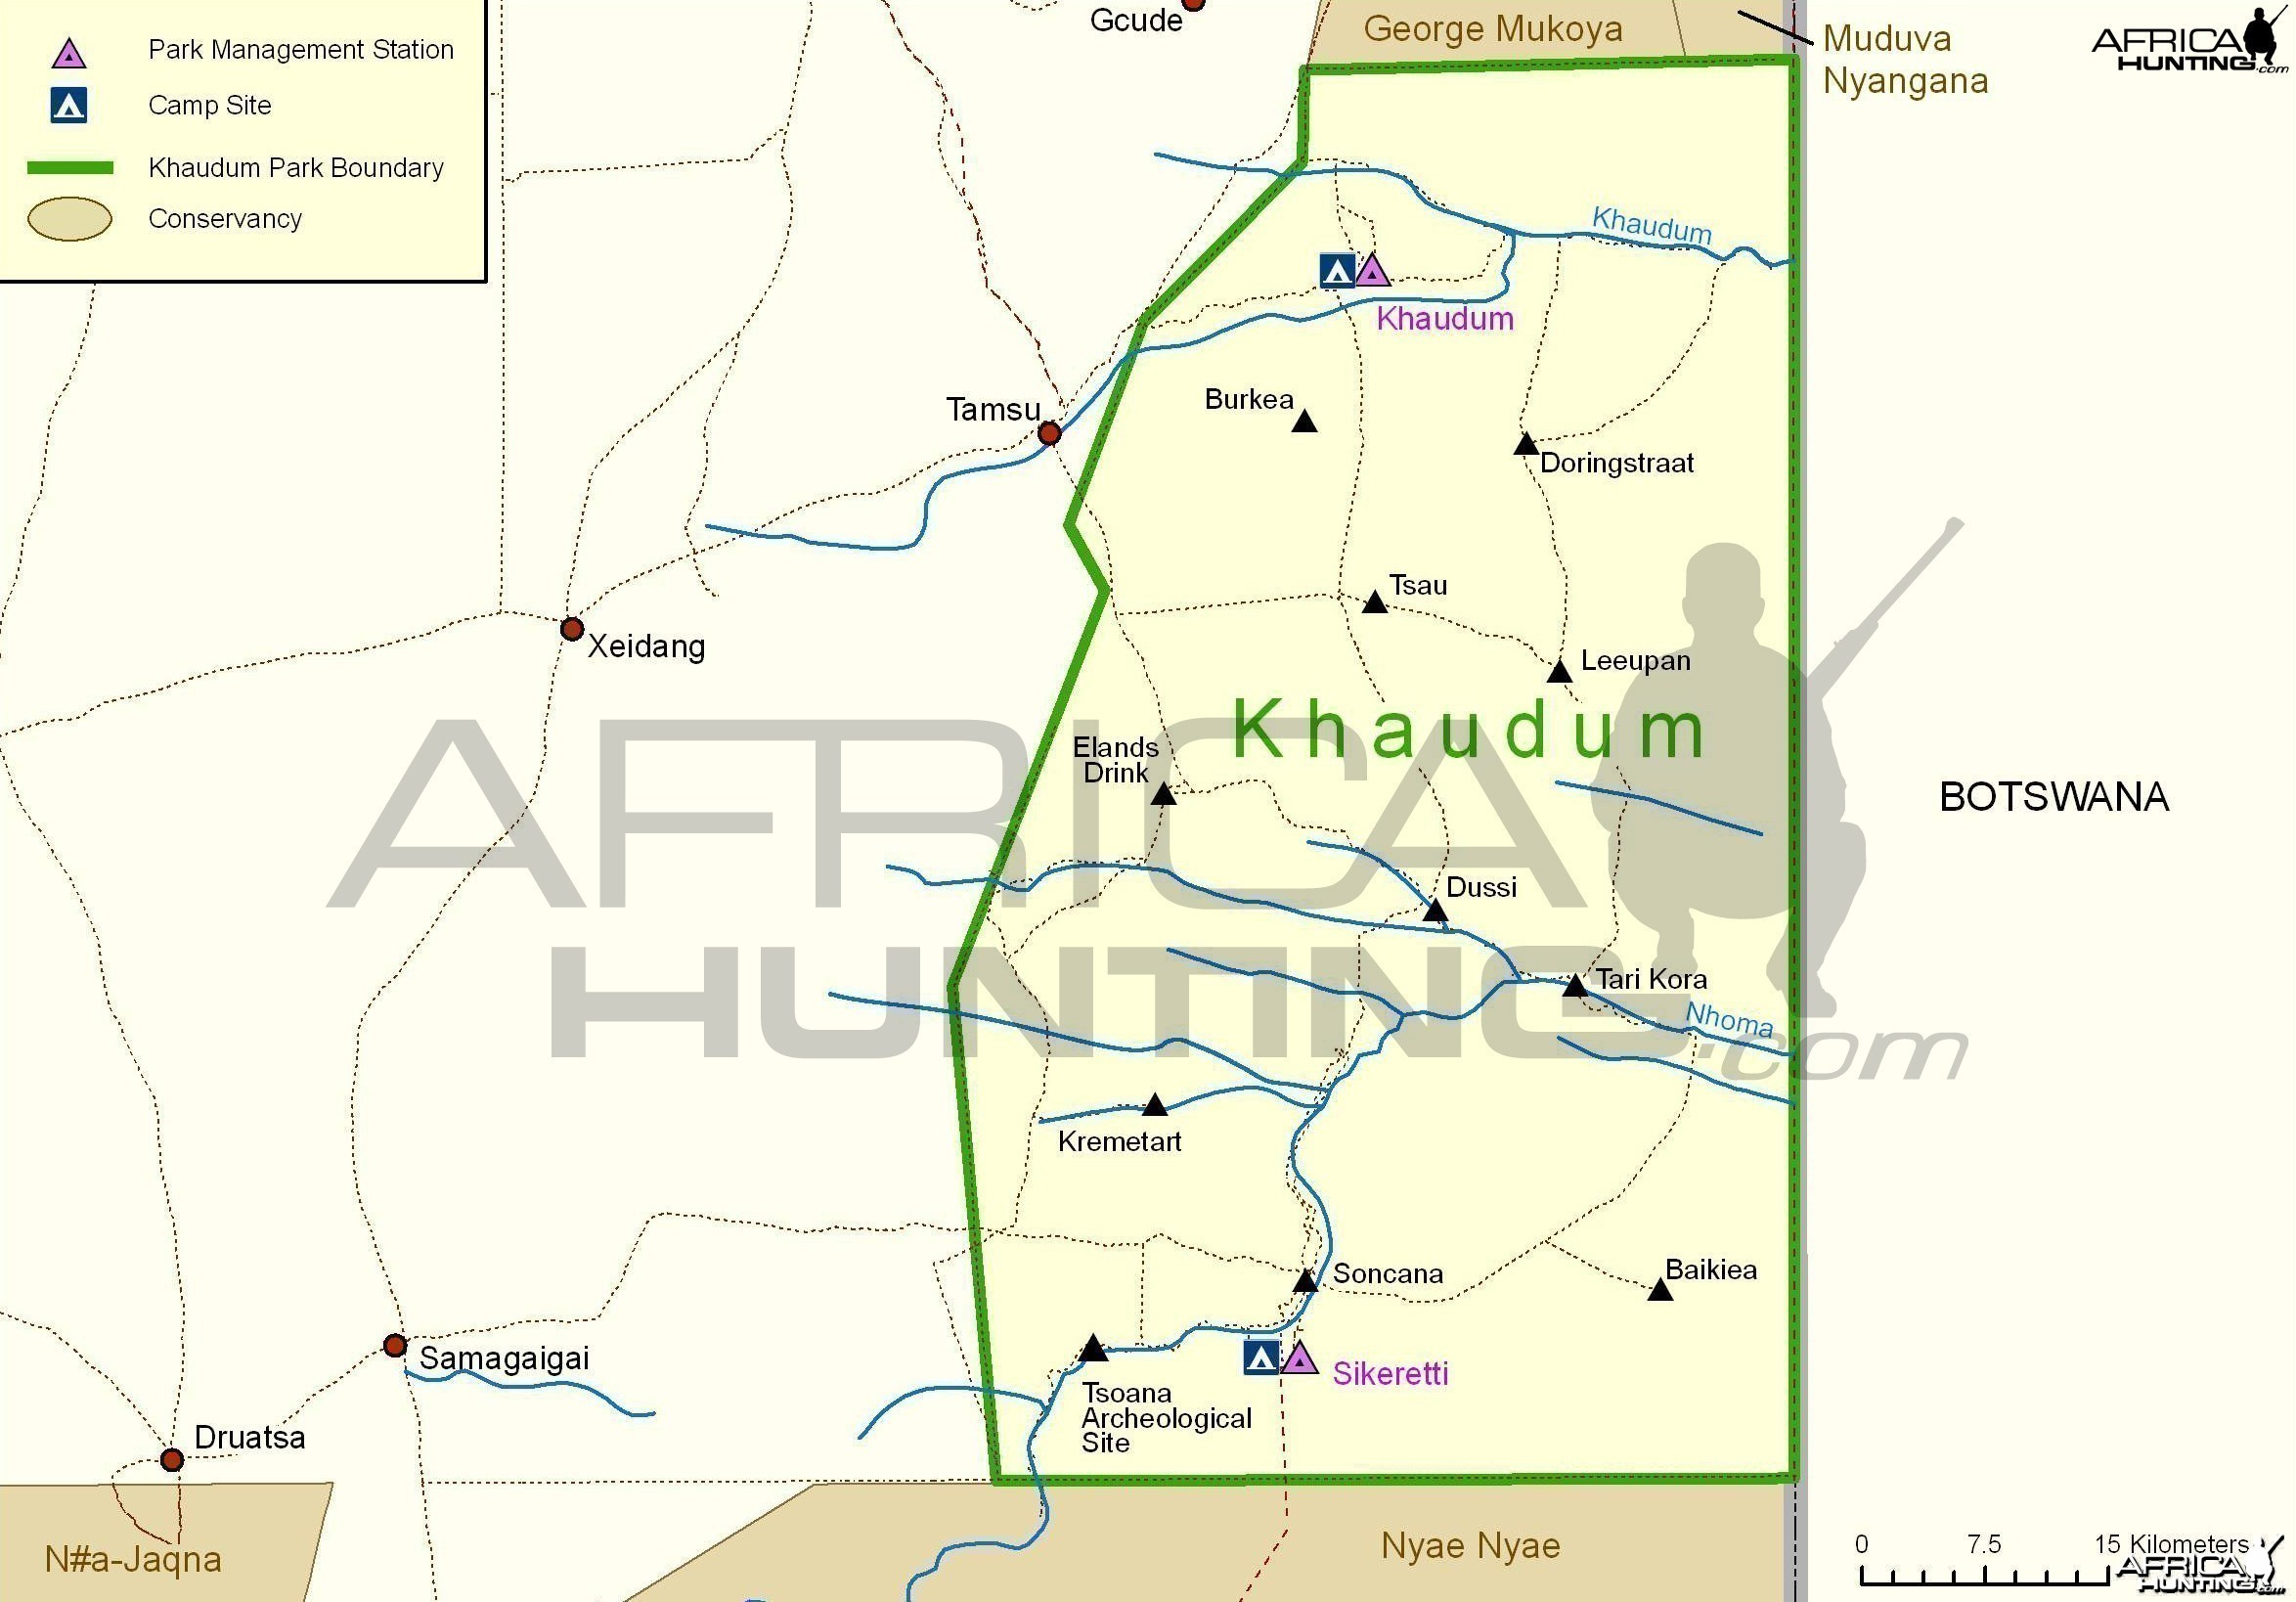 Khaudum National Park Map, Namibia